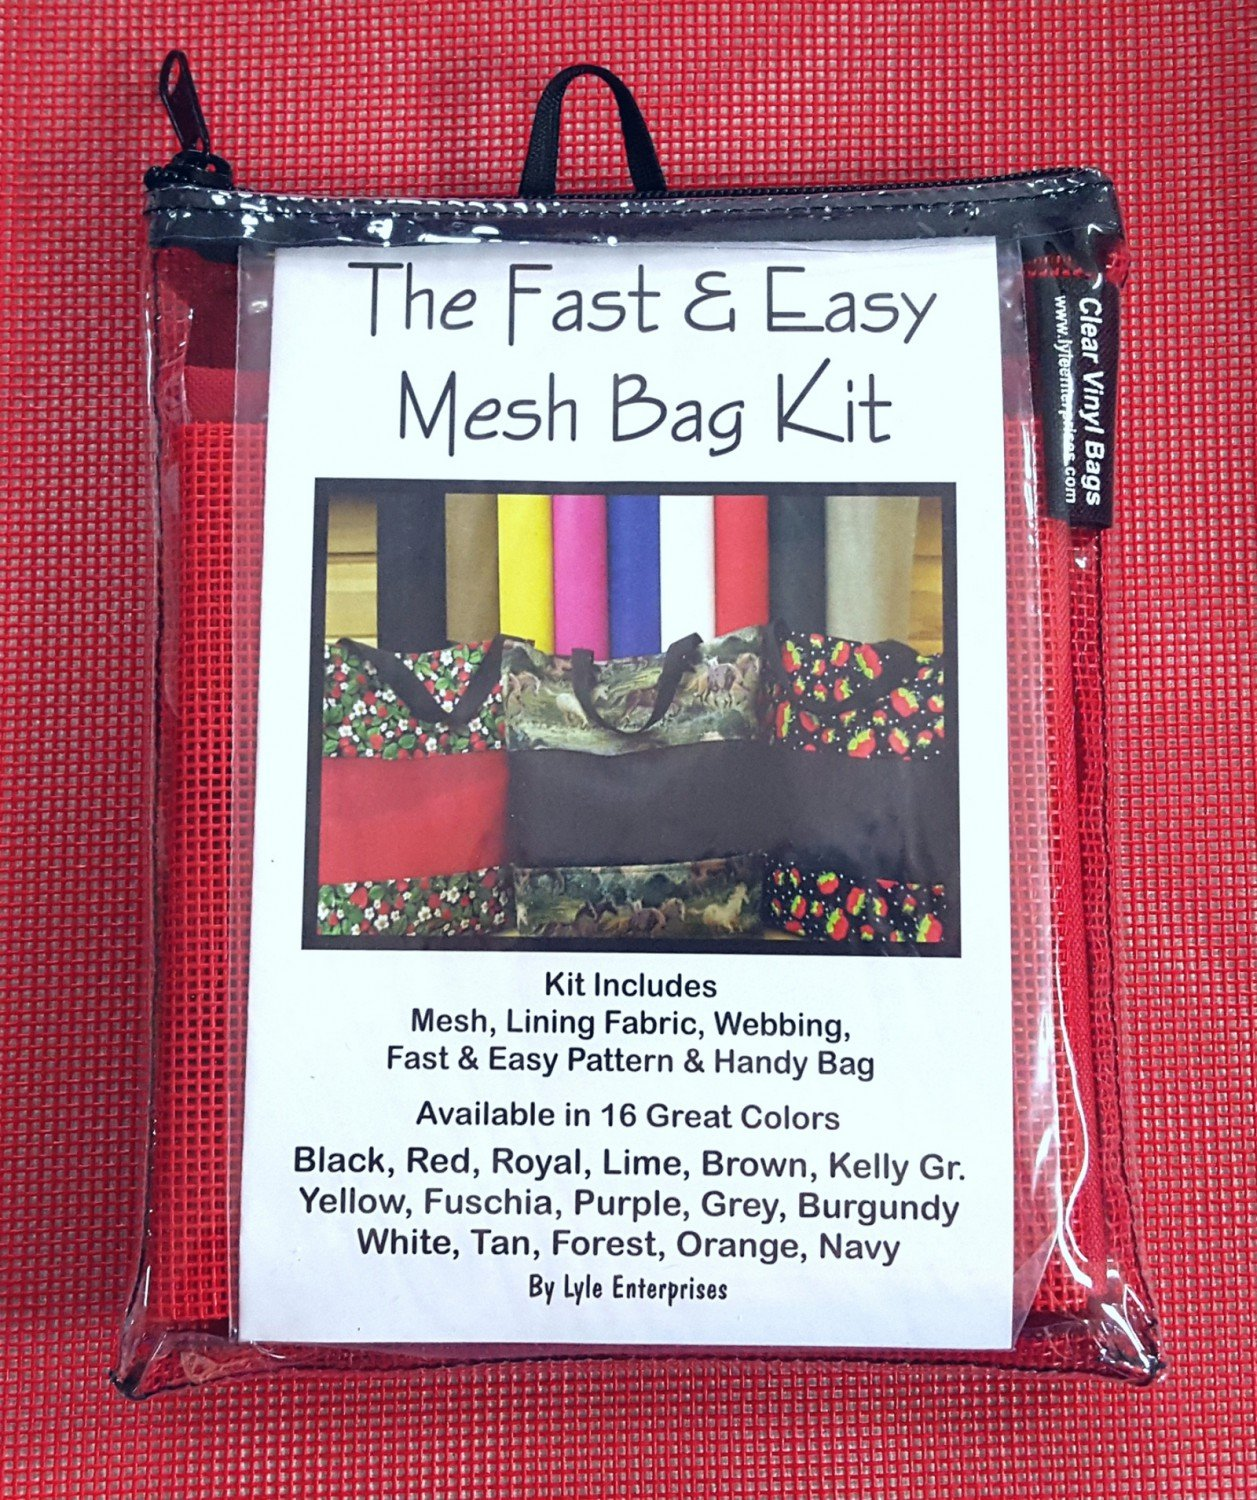 Red Mesh Bag Kit - MBK-128  - MAY BE RESTOCKED UPON REQUEST